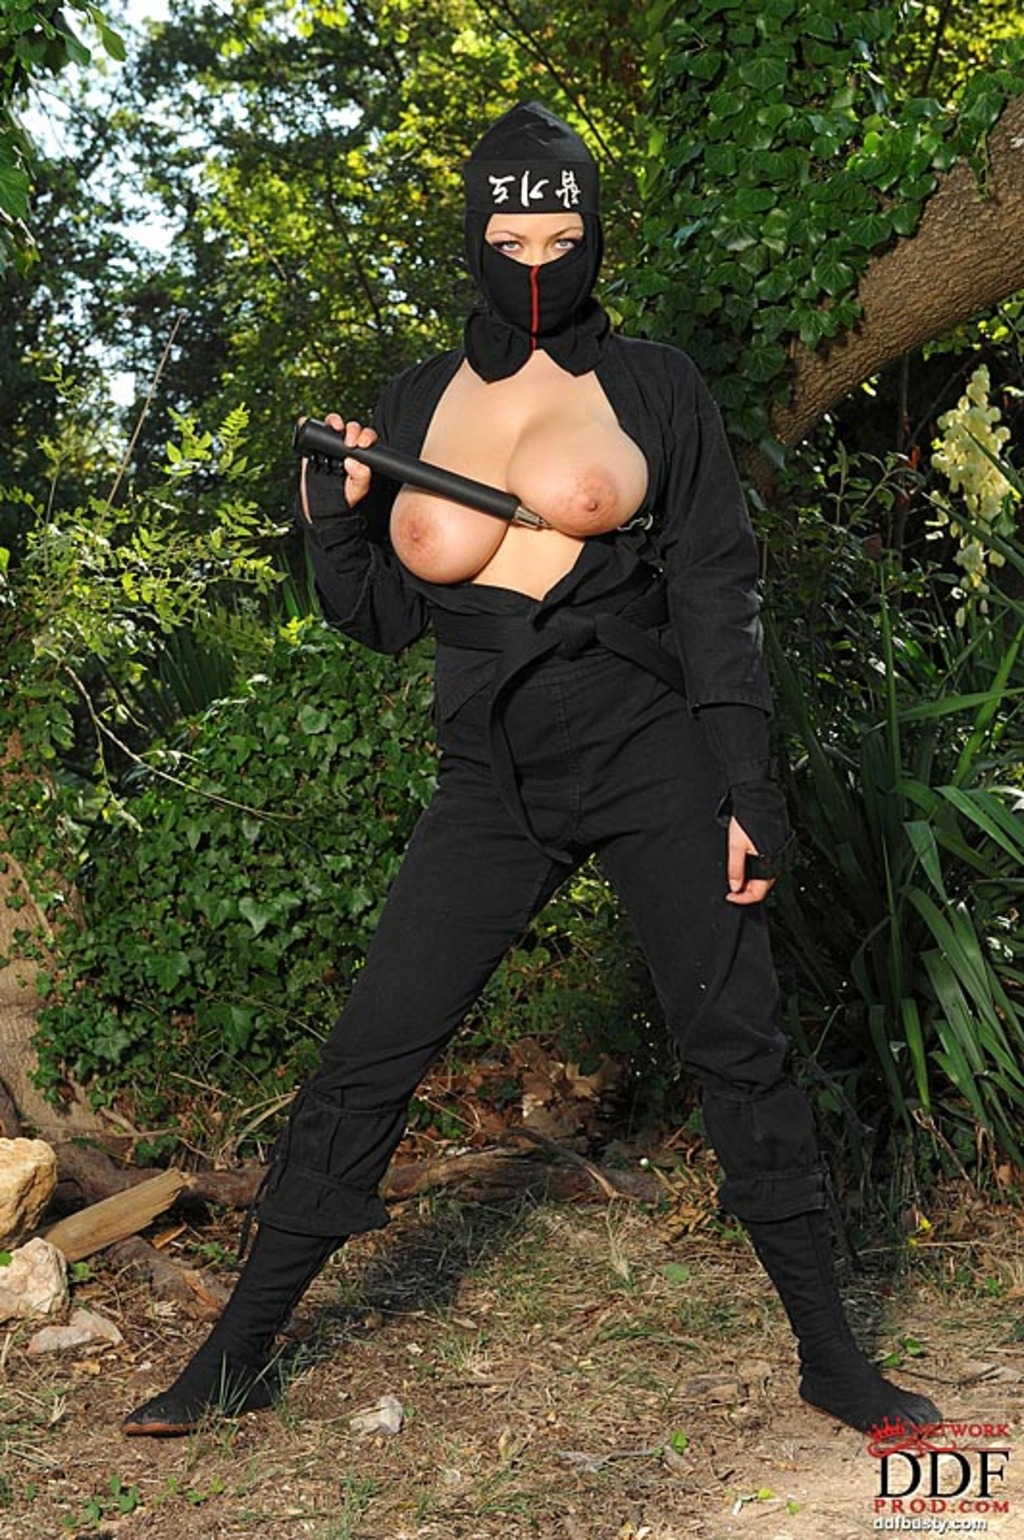 Ninja woman big boobs pics softcore films